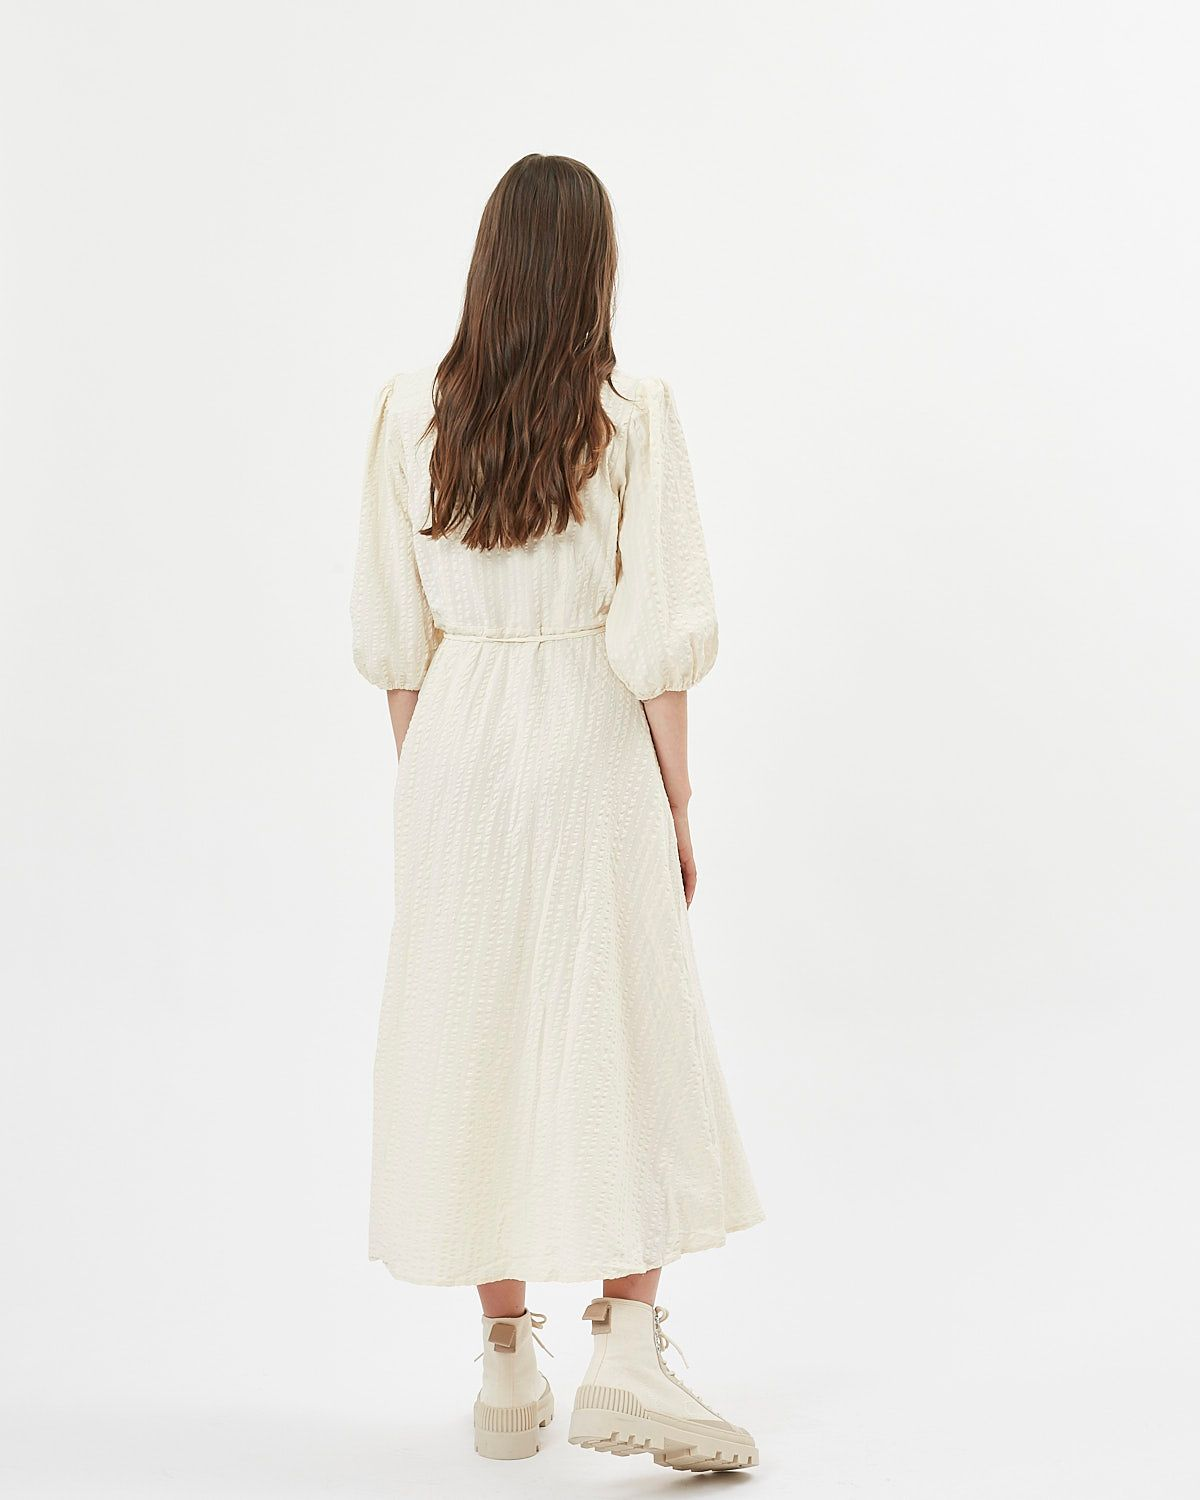 MINIMUM ELMINA DRESS - CORNHUSK